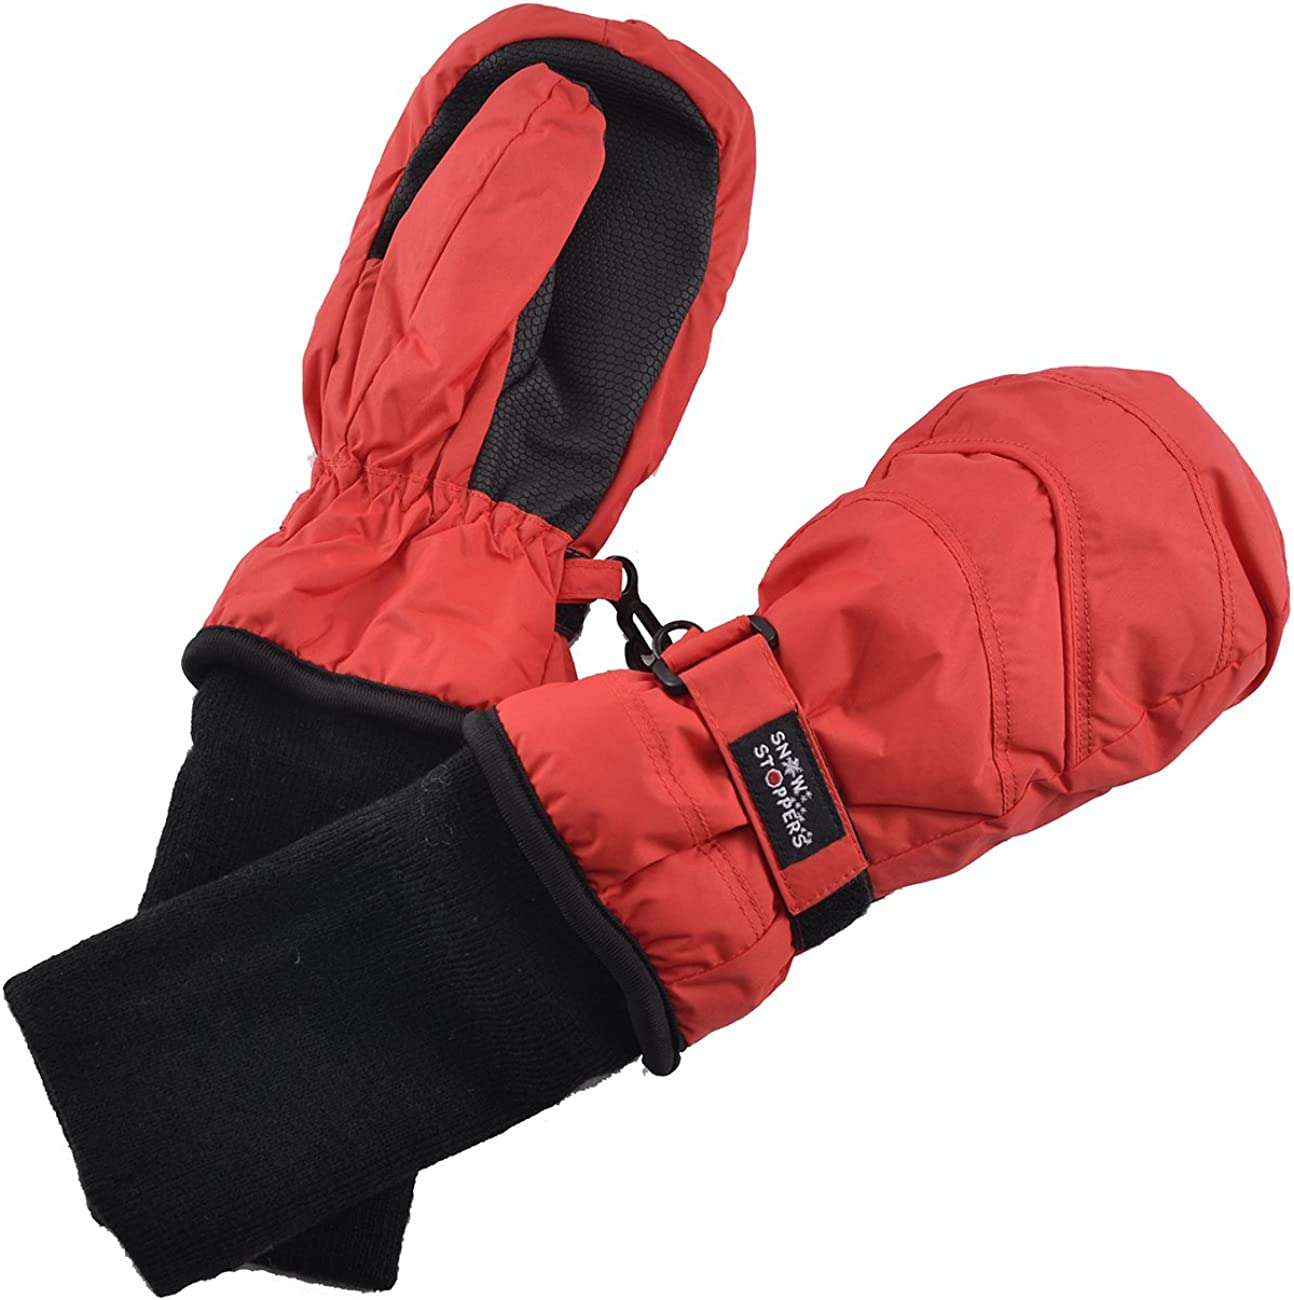 Chakka Snowblokka TM Kids Snow Mittens Waterproof Nylon Great for Ski /& Snowboard and Made with 3m Thinsulate and Extra Long Sleeve Foldable Cover Up